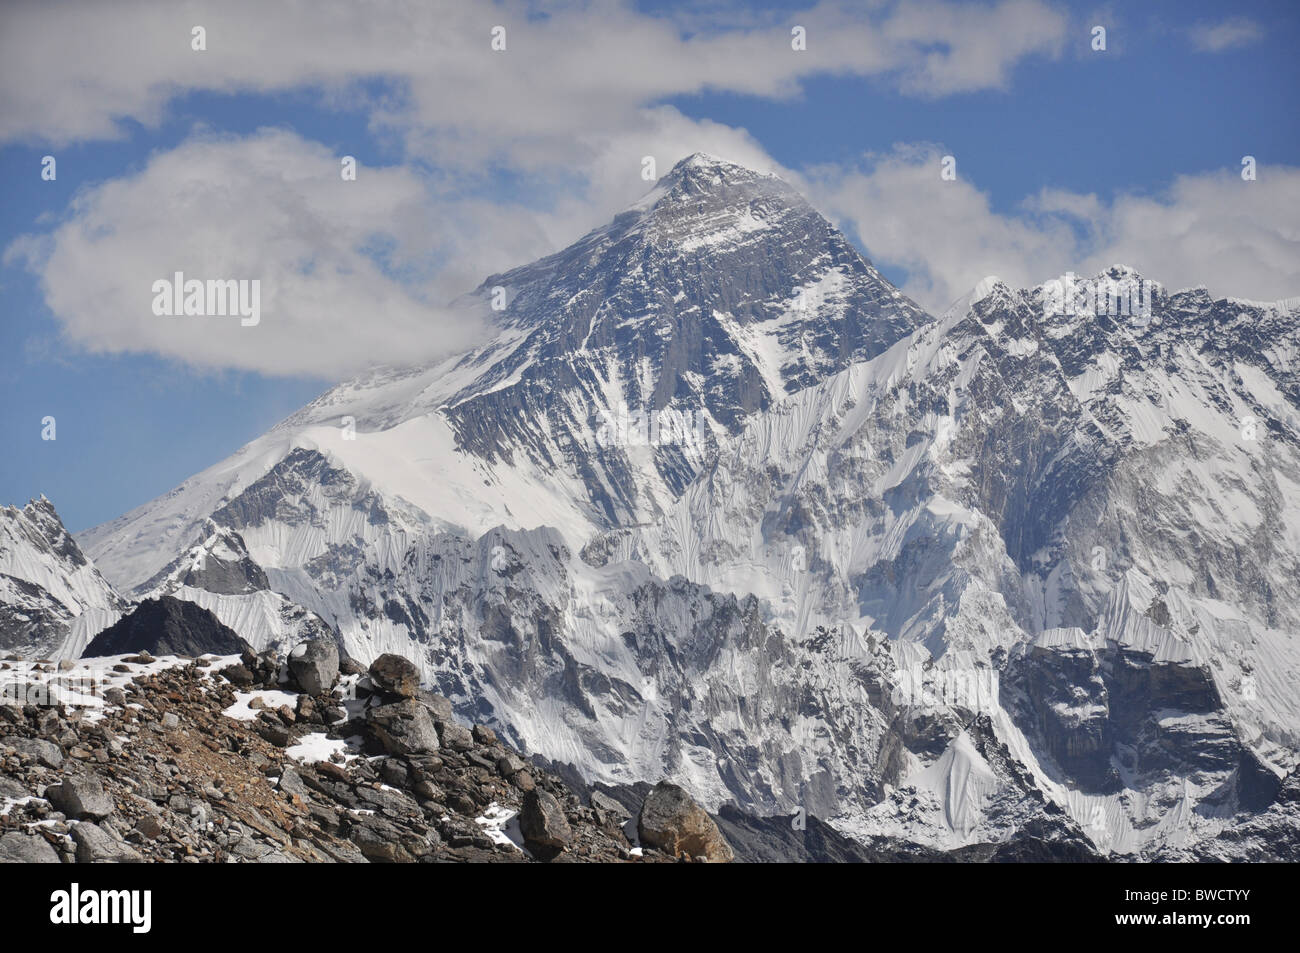 Mount Everest and her sisters - Stock Image